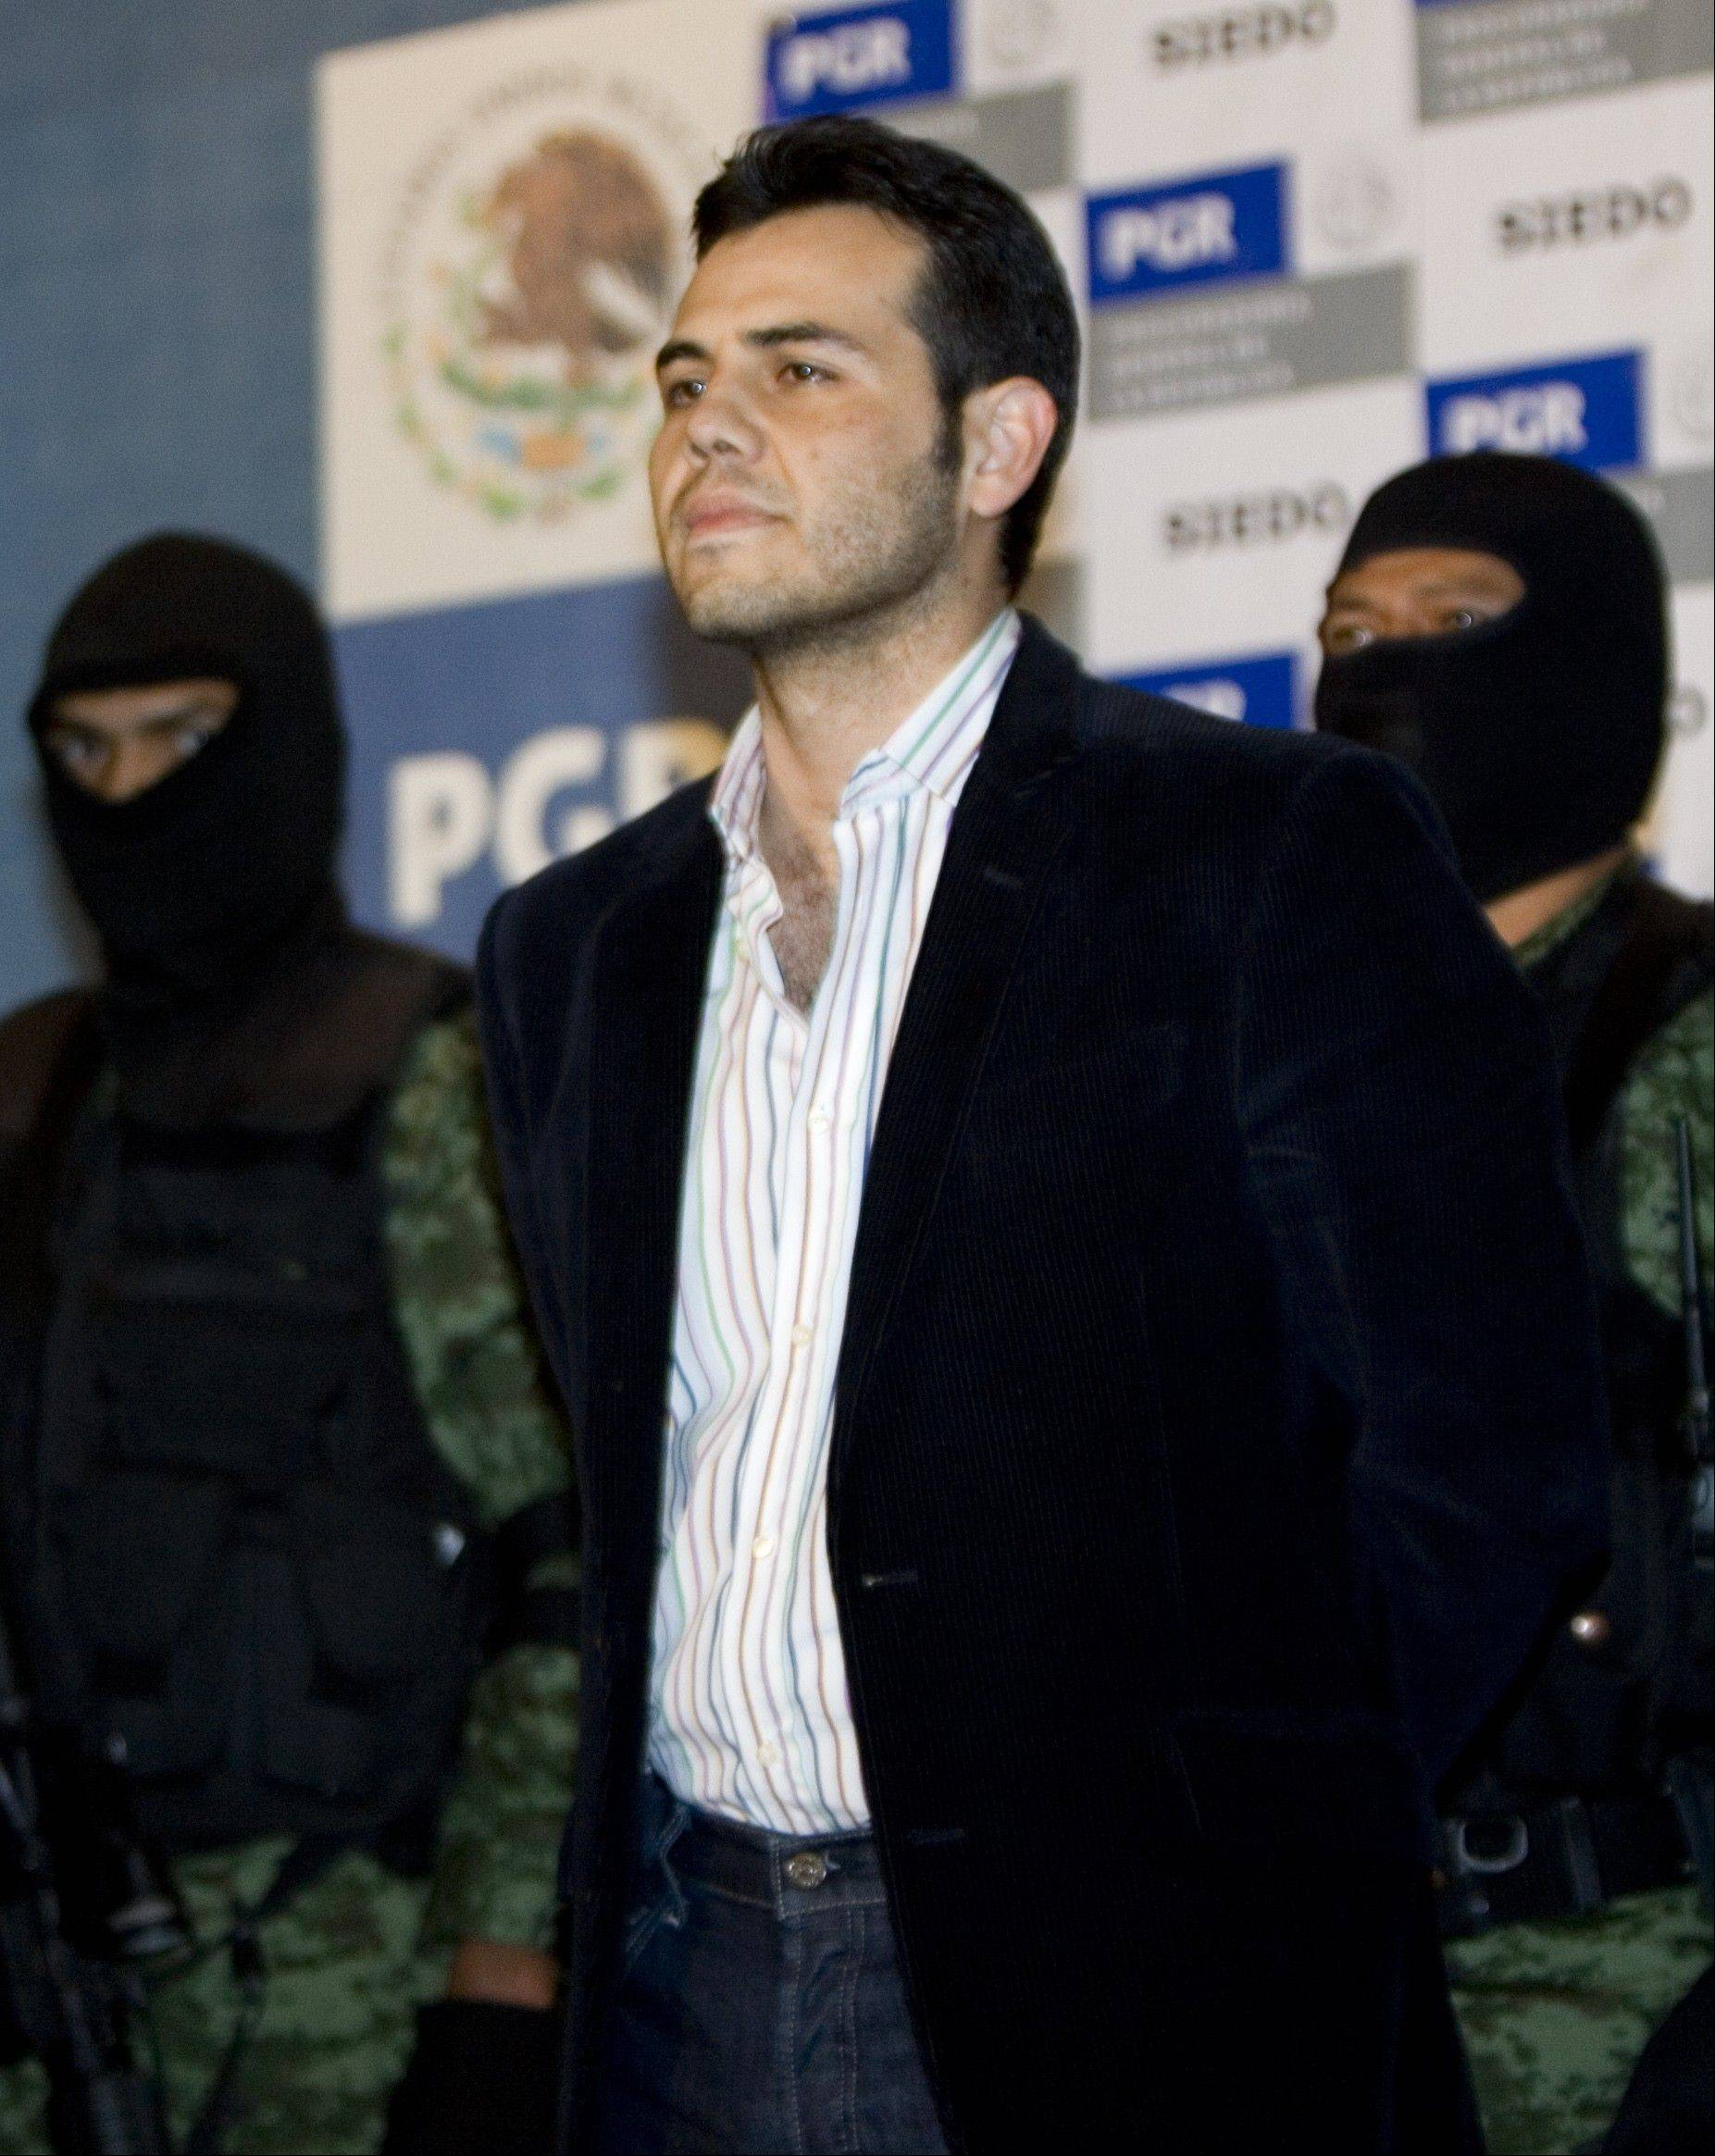 Military officers escort drug trafficker Vicente Zambada during his presentation to the media in Mexico City. Zambada is the son of Mexican drug lord Ismael Zambada, head of the Sinaloa cartel.